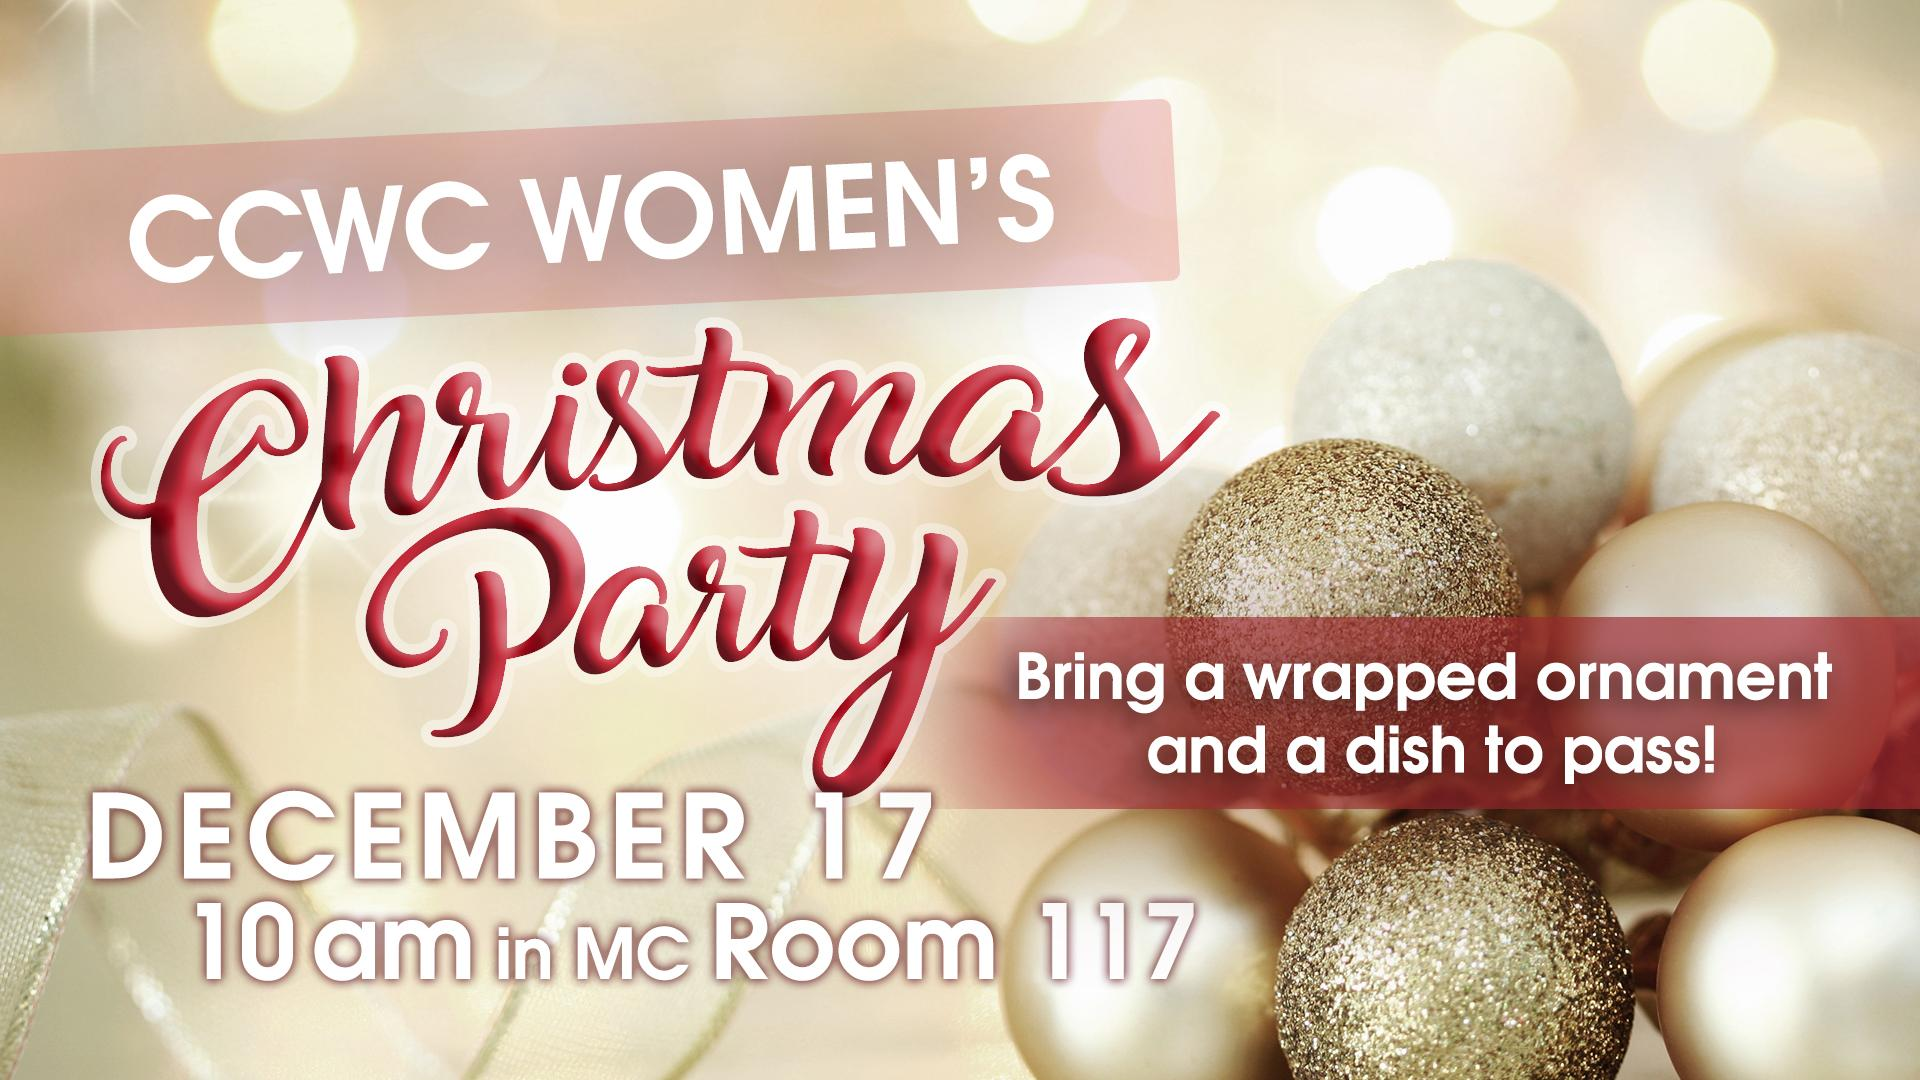 CCWC Women's AM Christmas Party